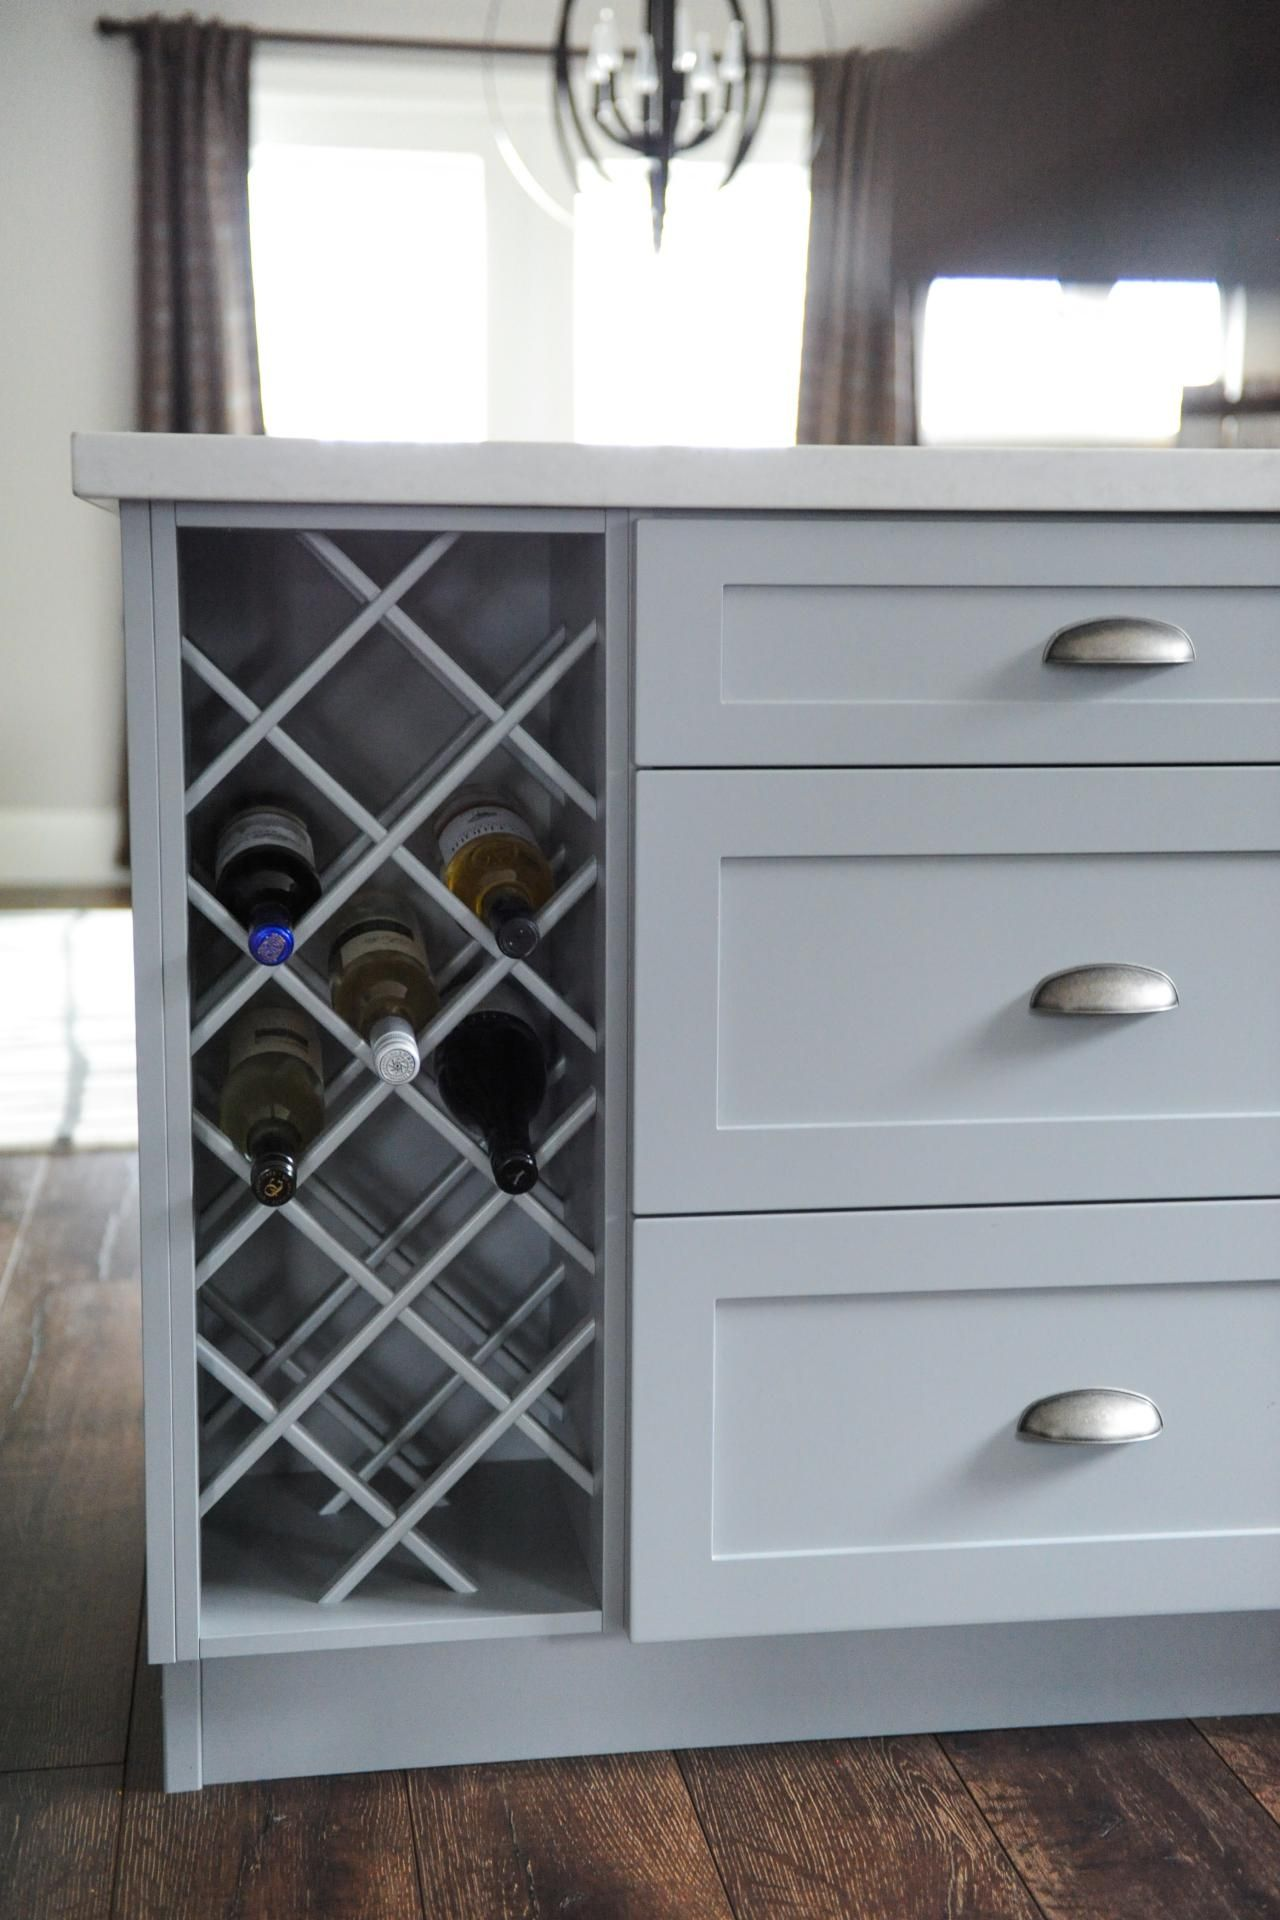 Wine Rack For Inside Kitchen Cabinet | http://garecscleaningsystems ...